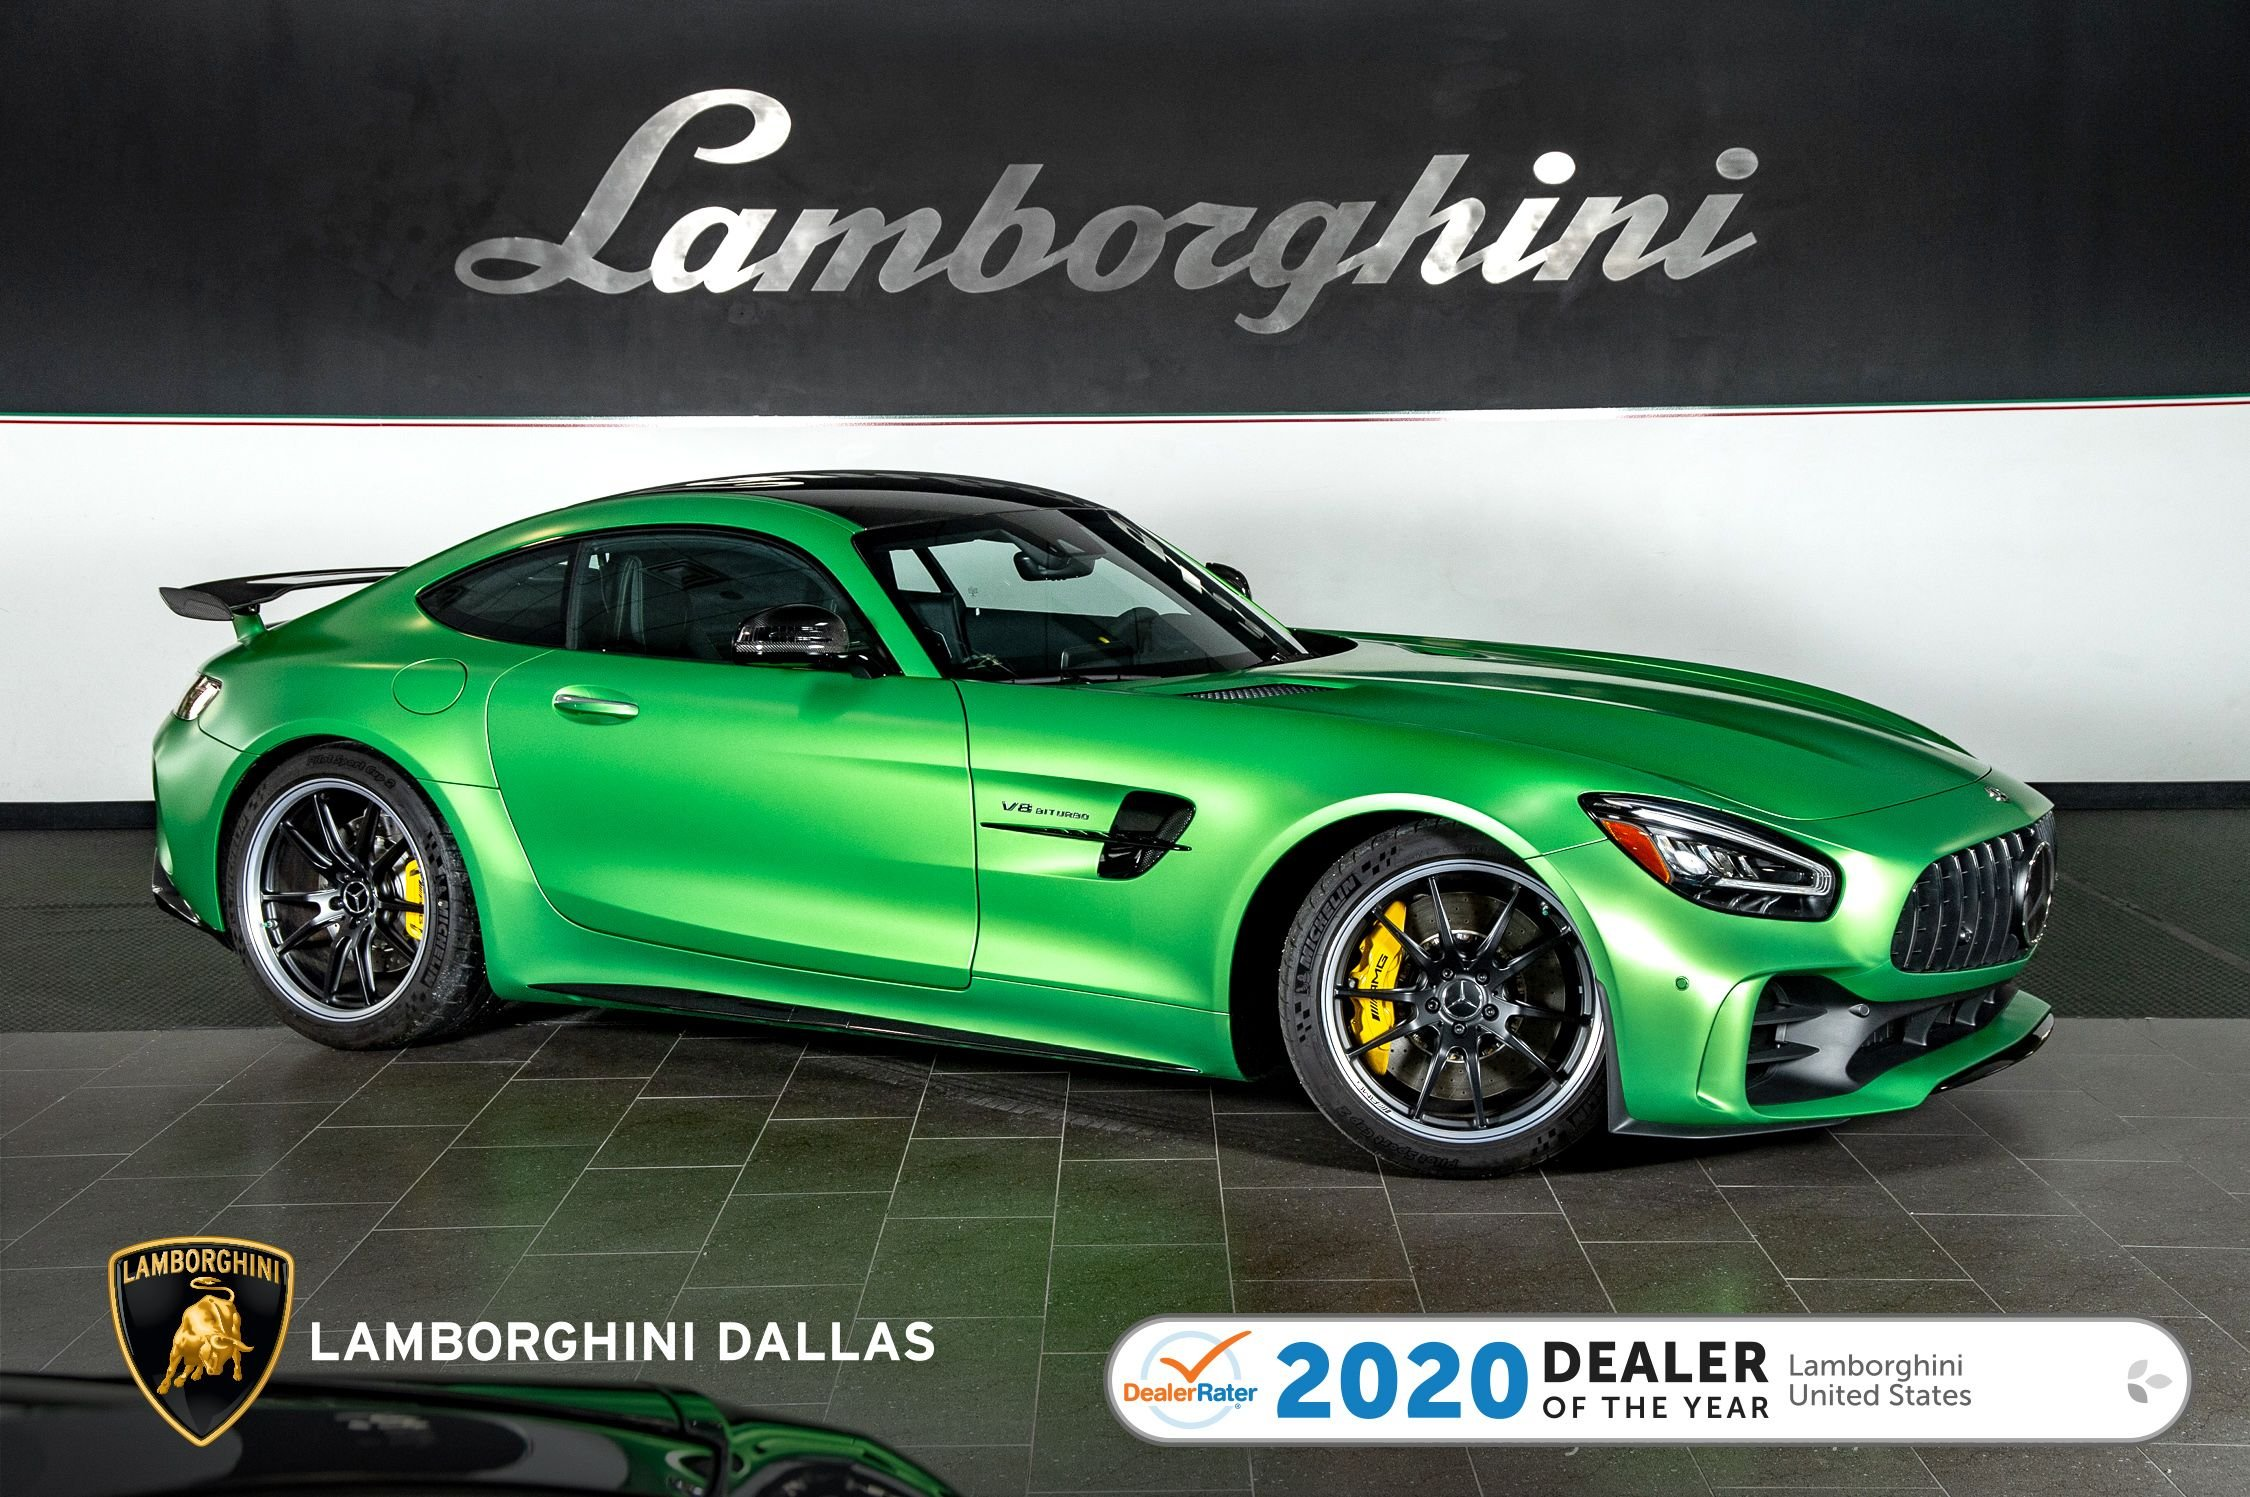 used 2020 Mercedes-Benz AMG GT R car, priced at $169,999